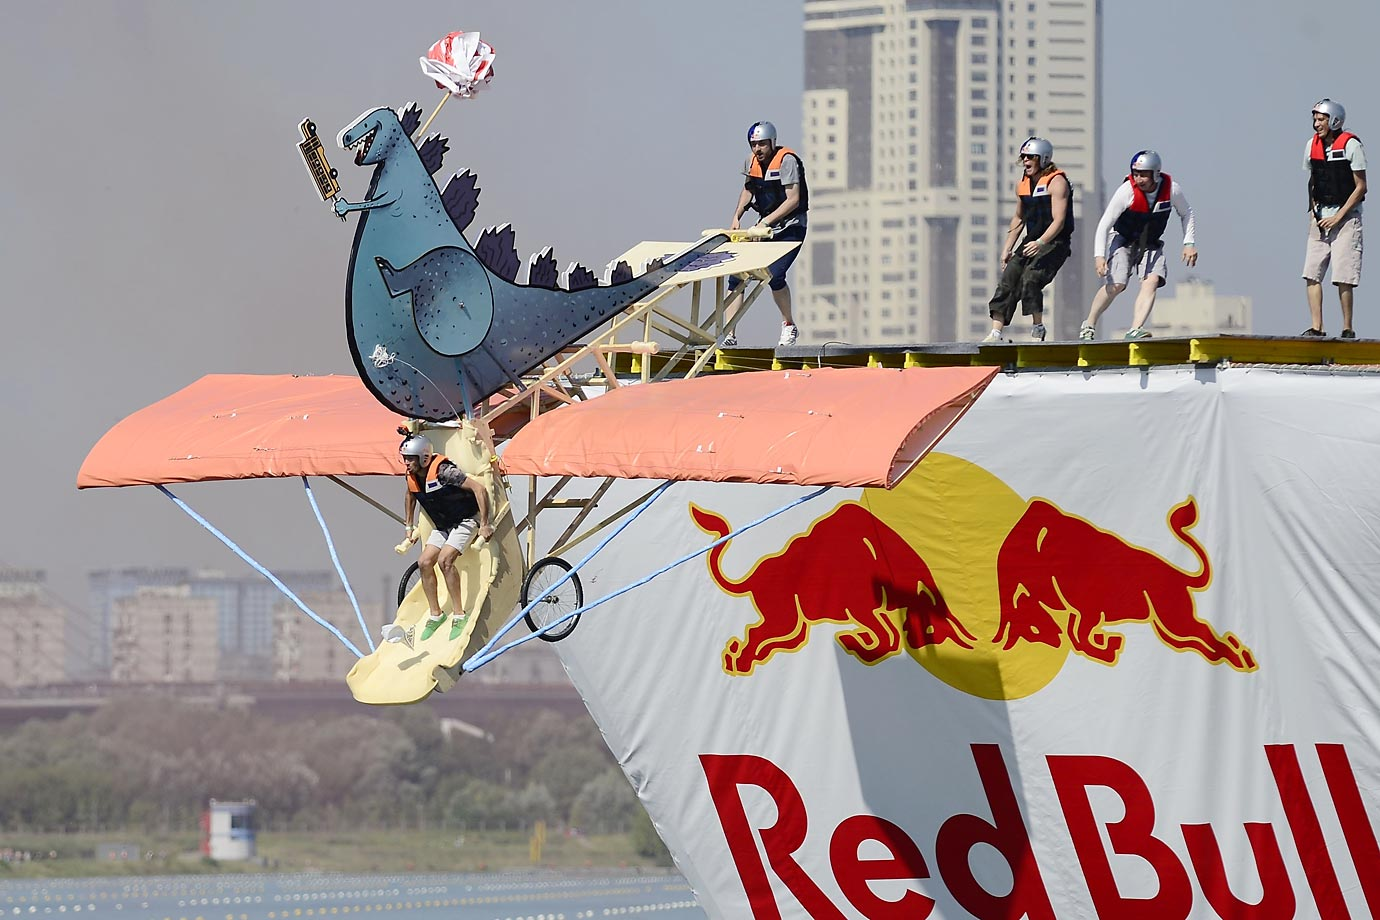 The Red Bull Flugtag Russia 2015 competition in Moscow, Russia. Thirty-nine teams took part in the event piloting their self-made aircrafts, which launched, or plunged, into Grebnoy Chenal.